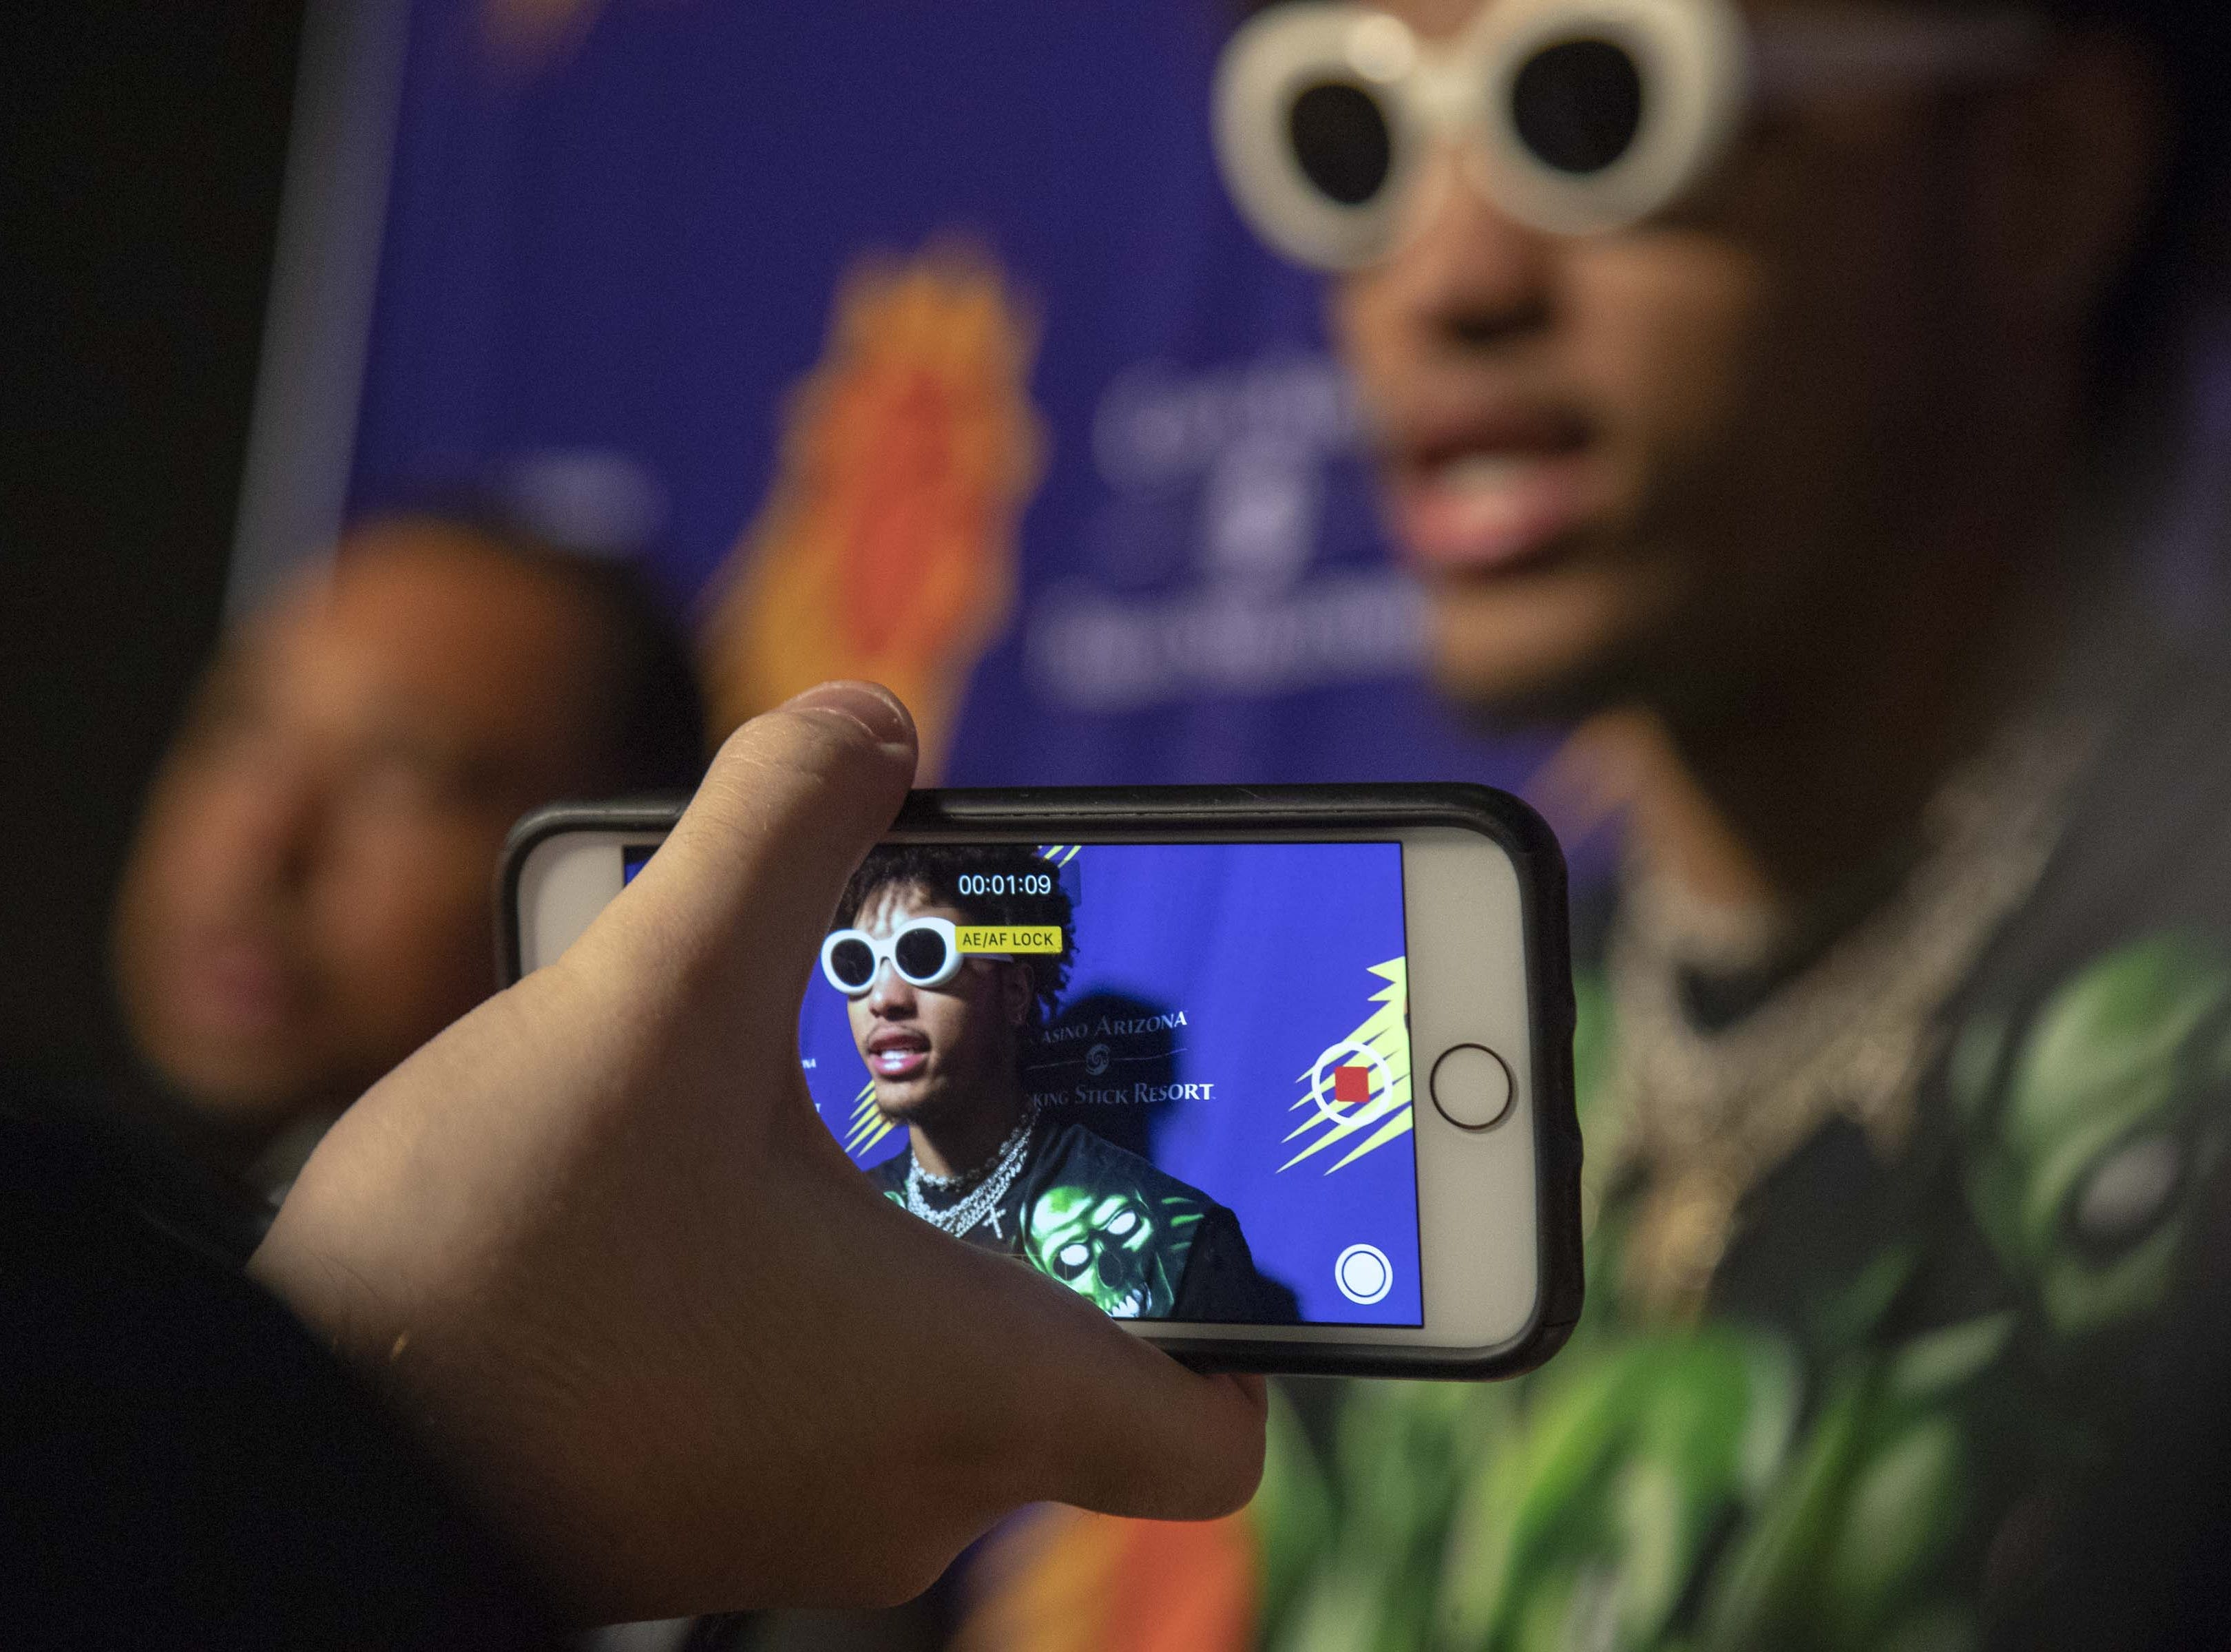 Kelly Oubre Jr. is seen on a cell phone screen during his exit interview following the Suns' 2018-19 season.